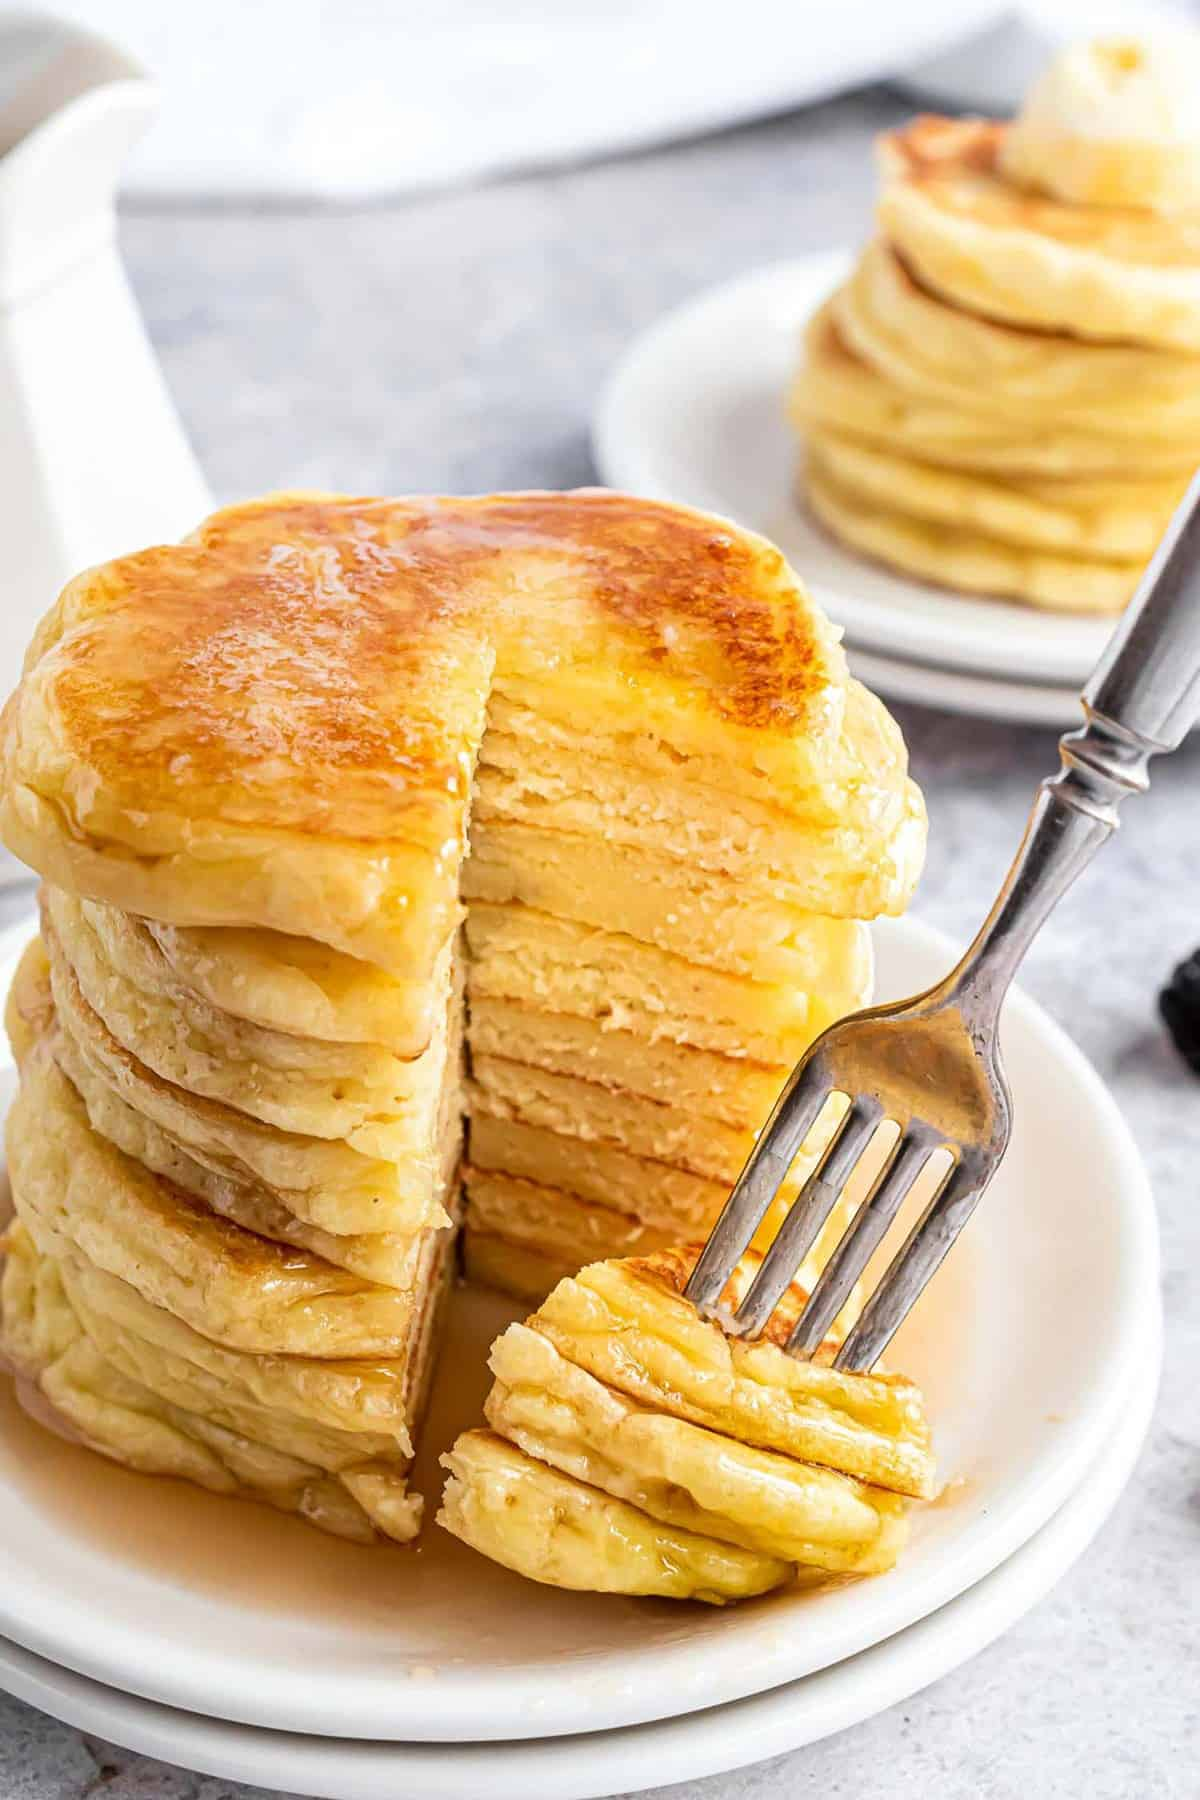 Large stack of pancakes being cut into with a fork.